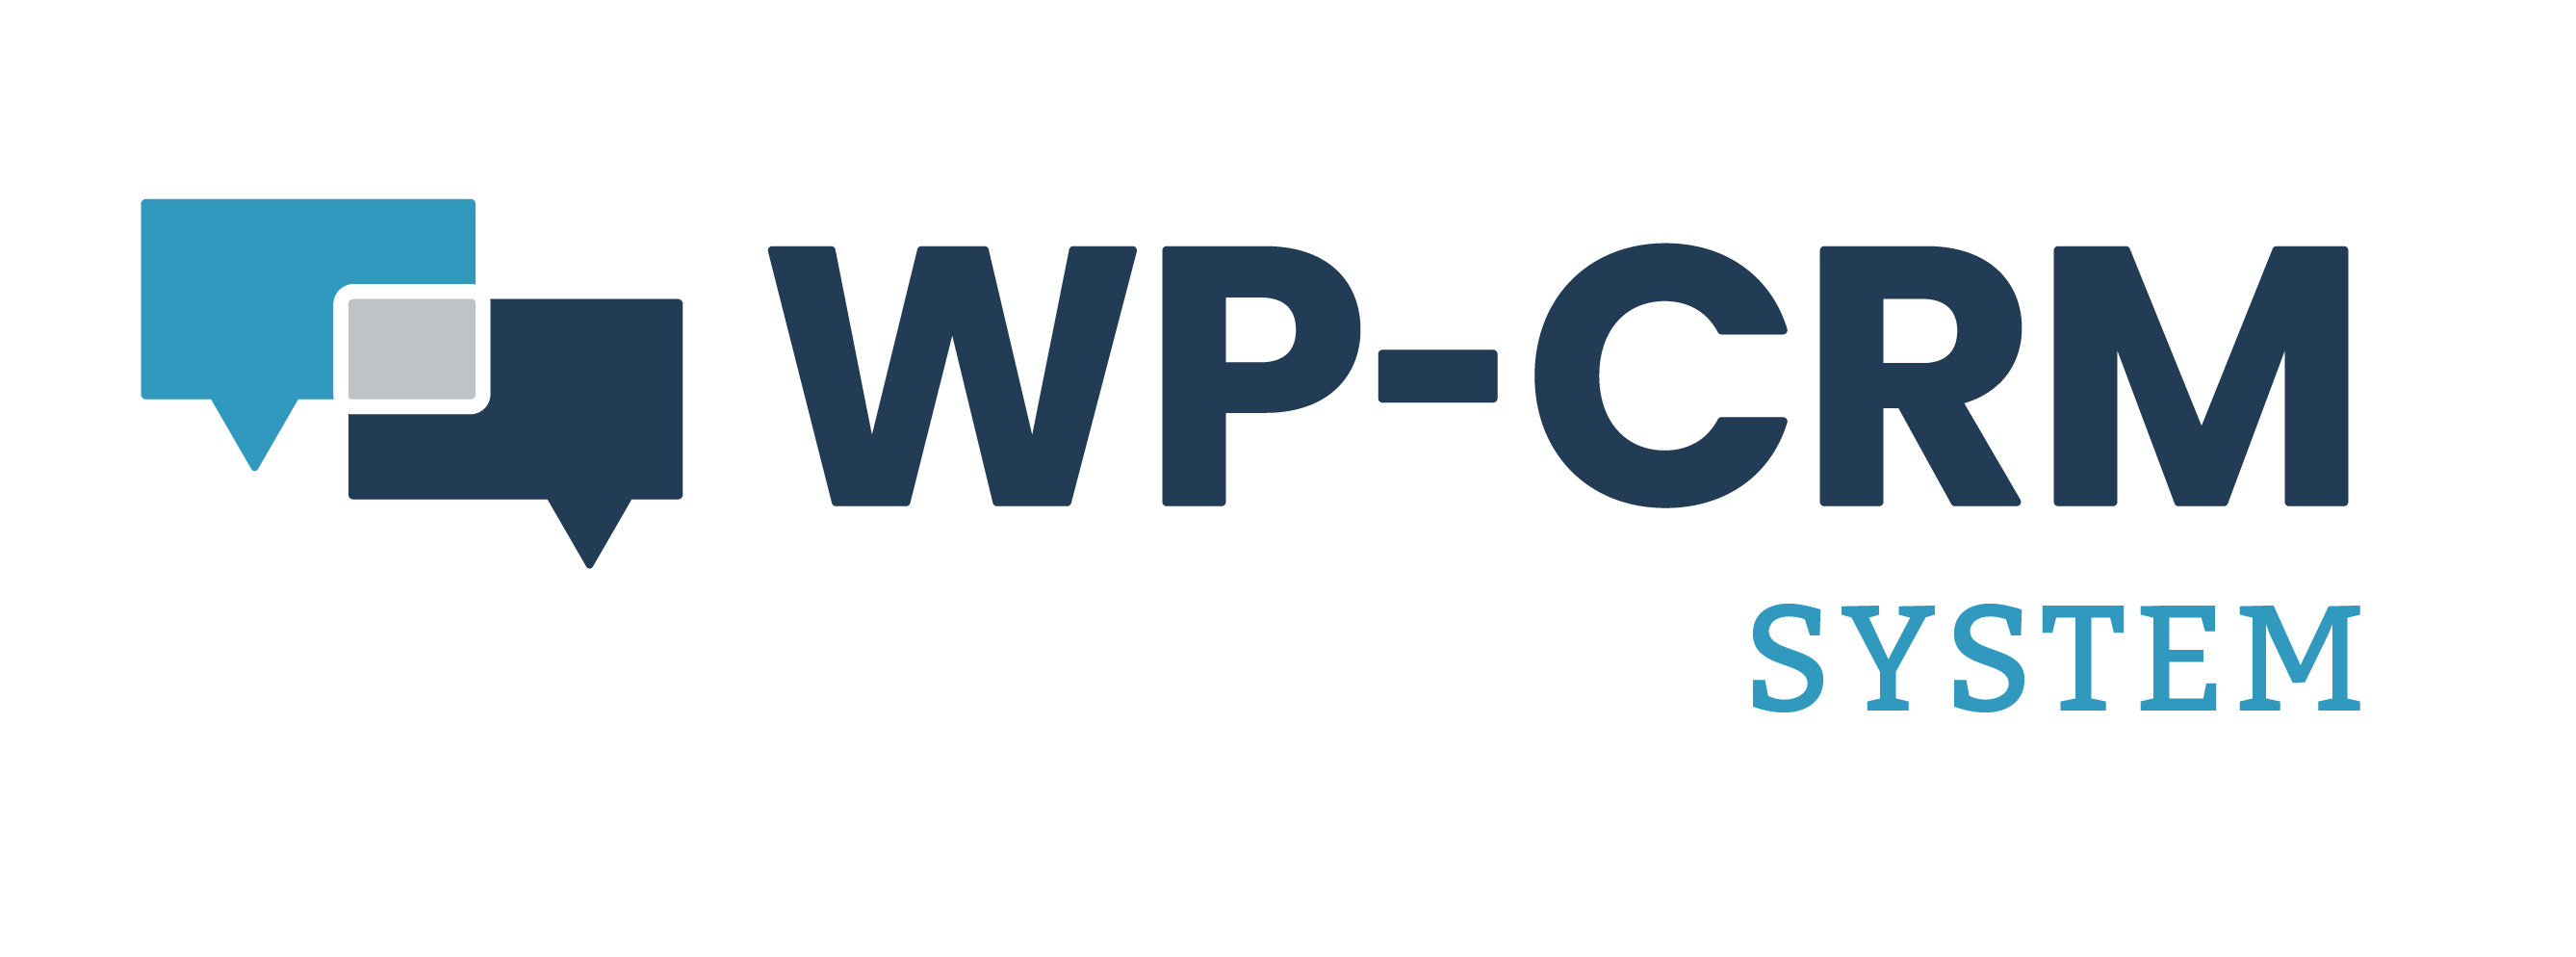 Demo WP CRM System